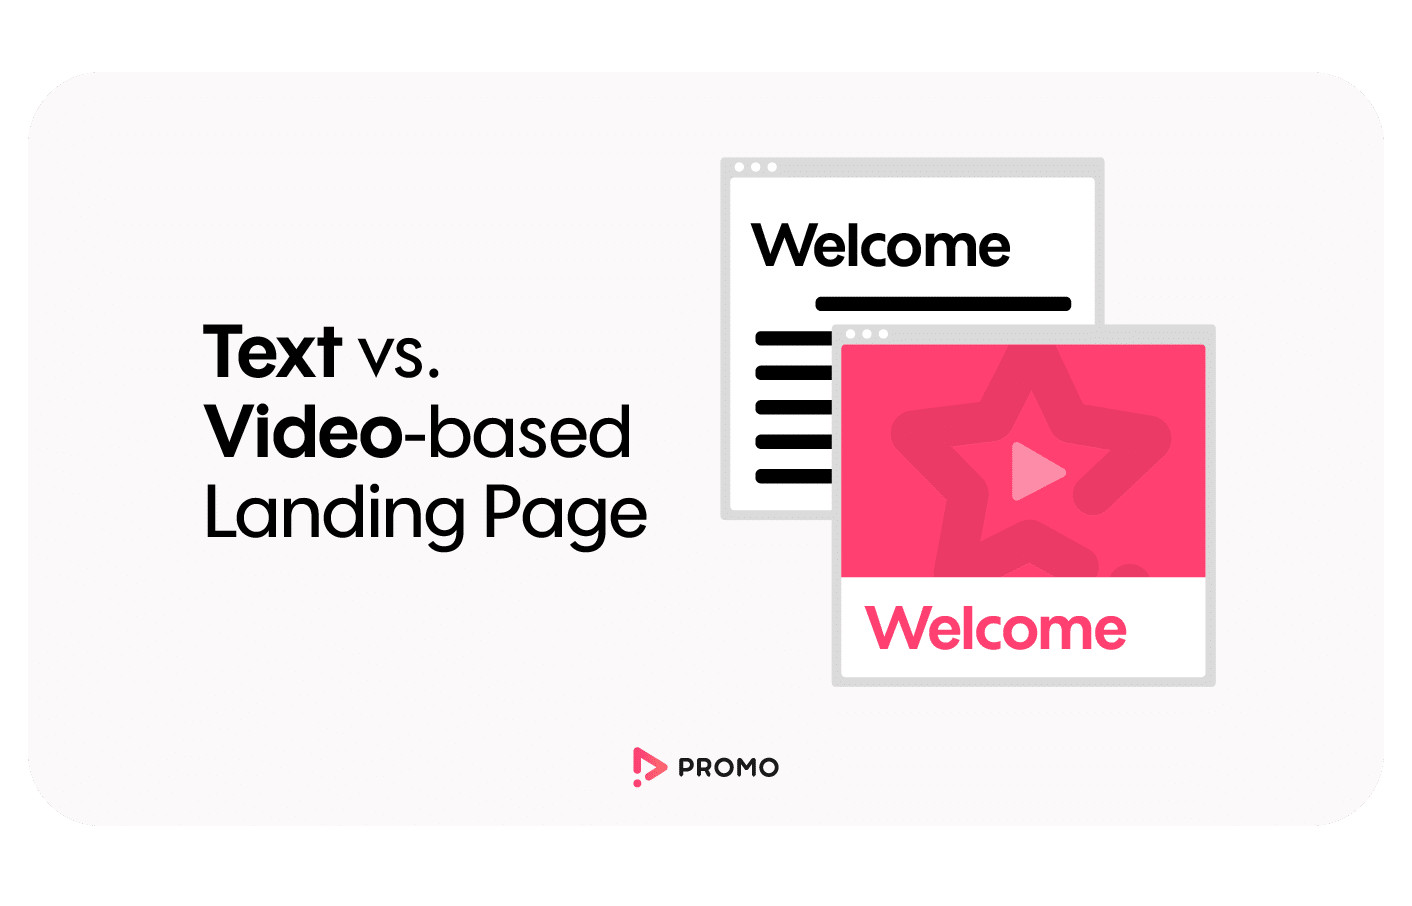 text vs. video-based landing page